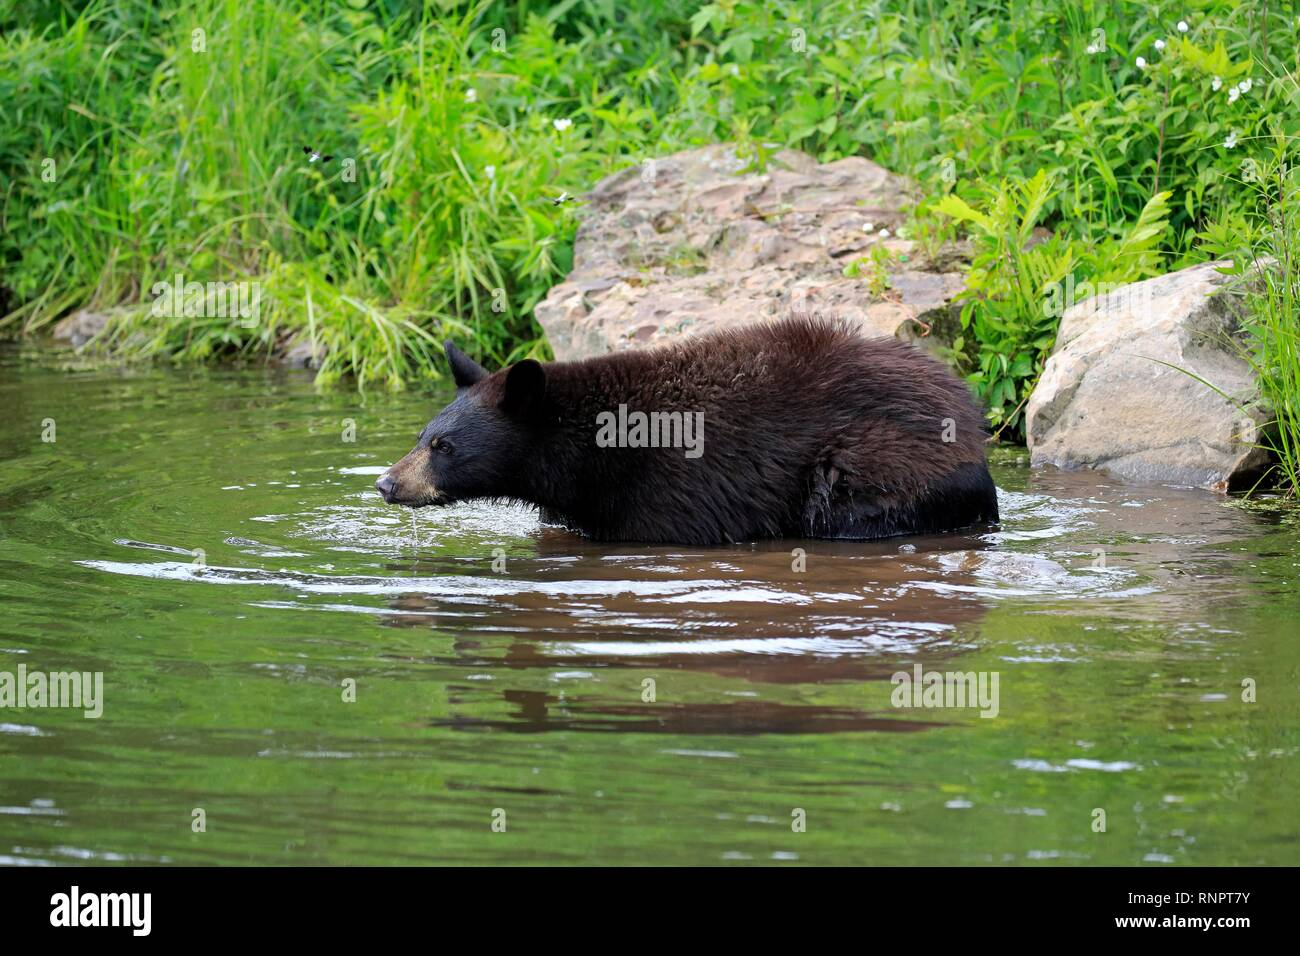 American Black Bear (Ursus americanus), young animal in water, Pine County, Minnesota, USA Stock Photo